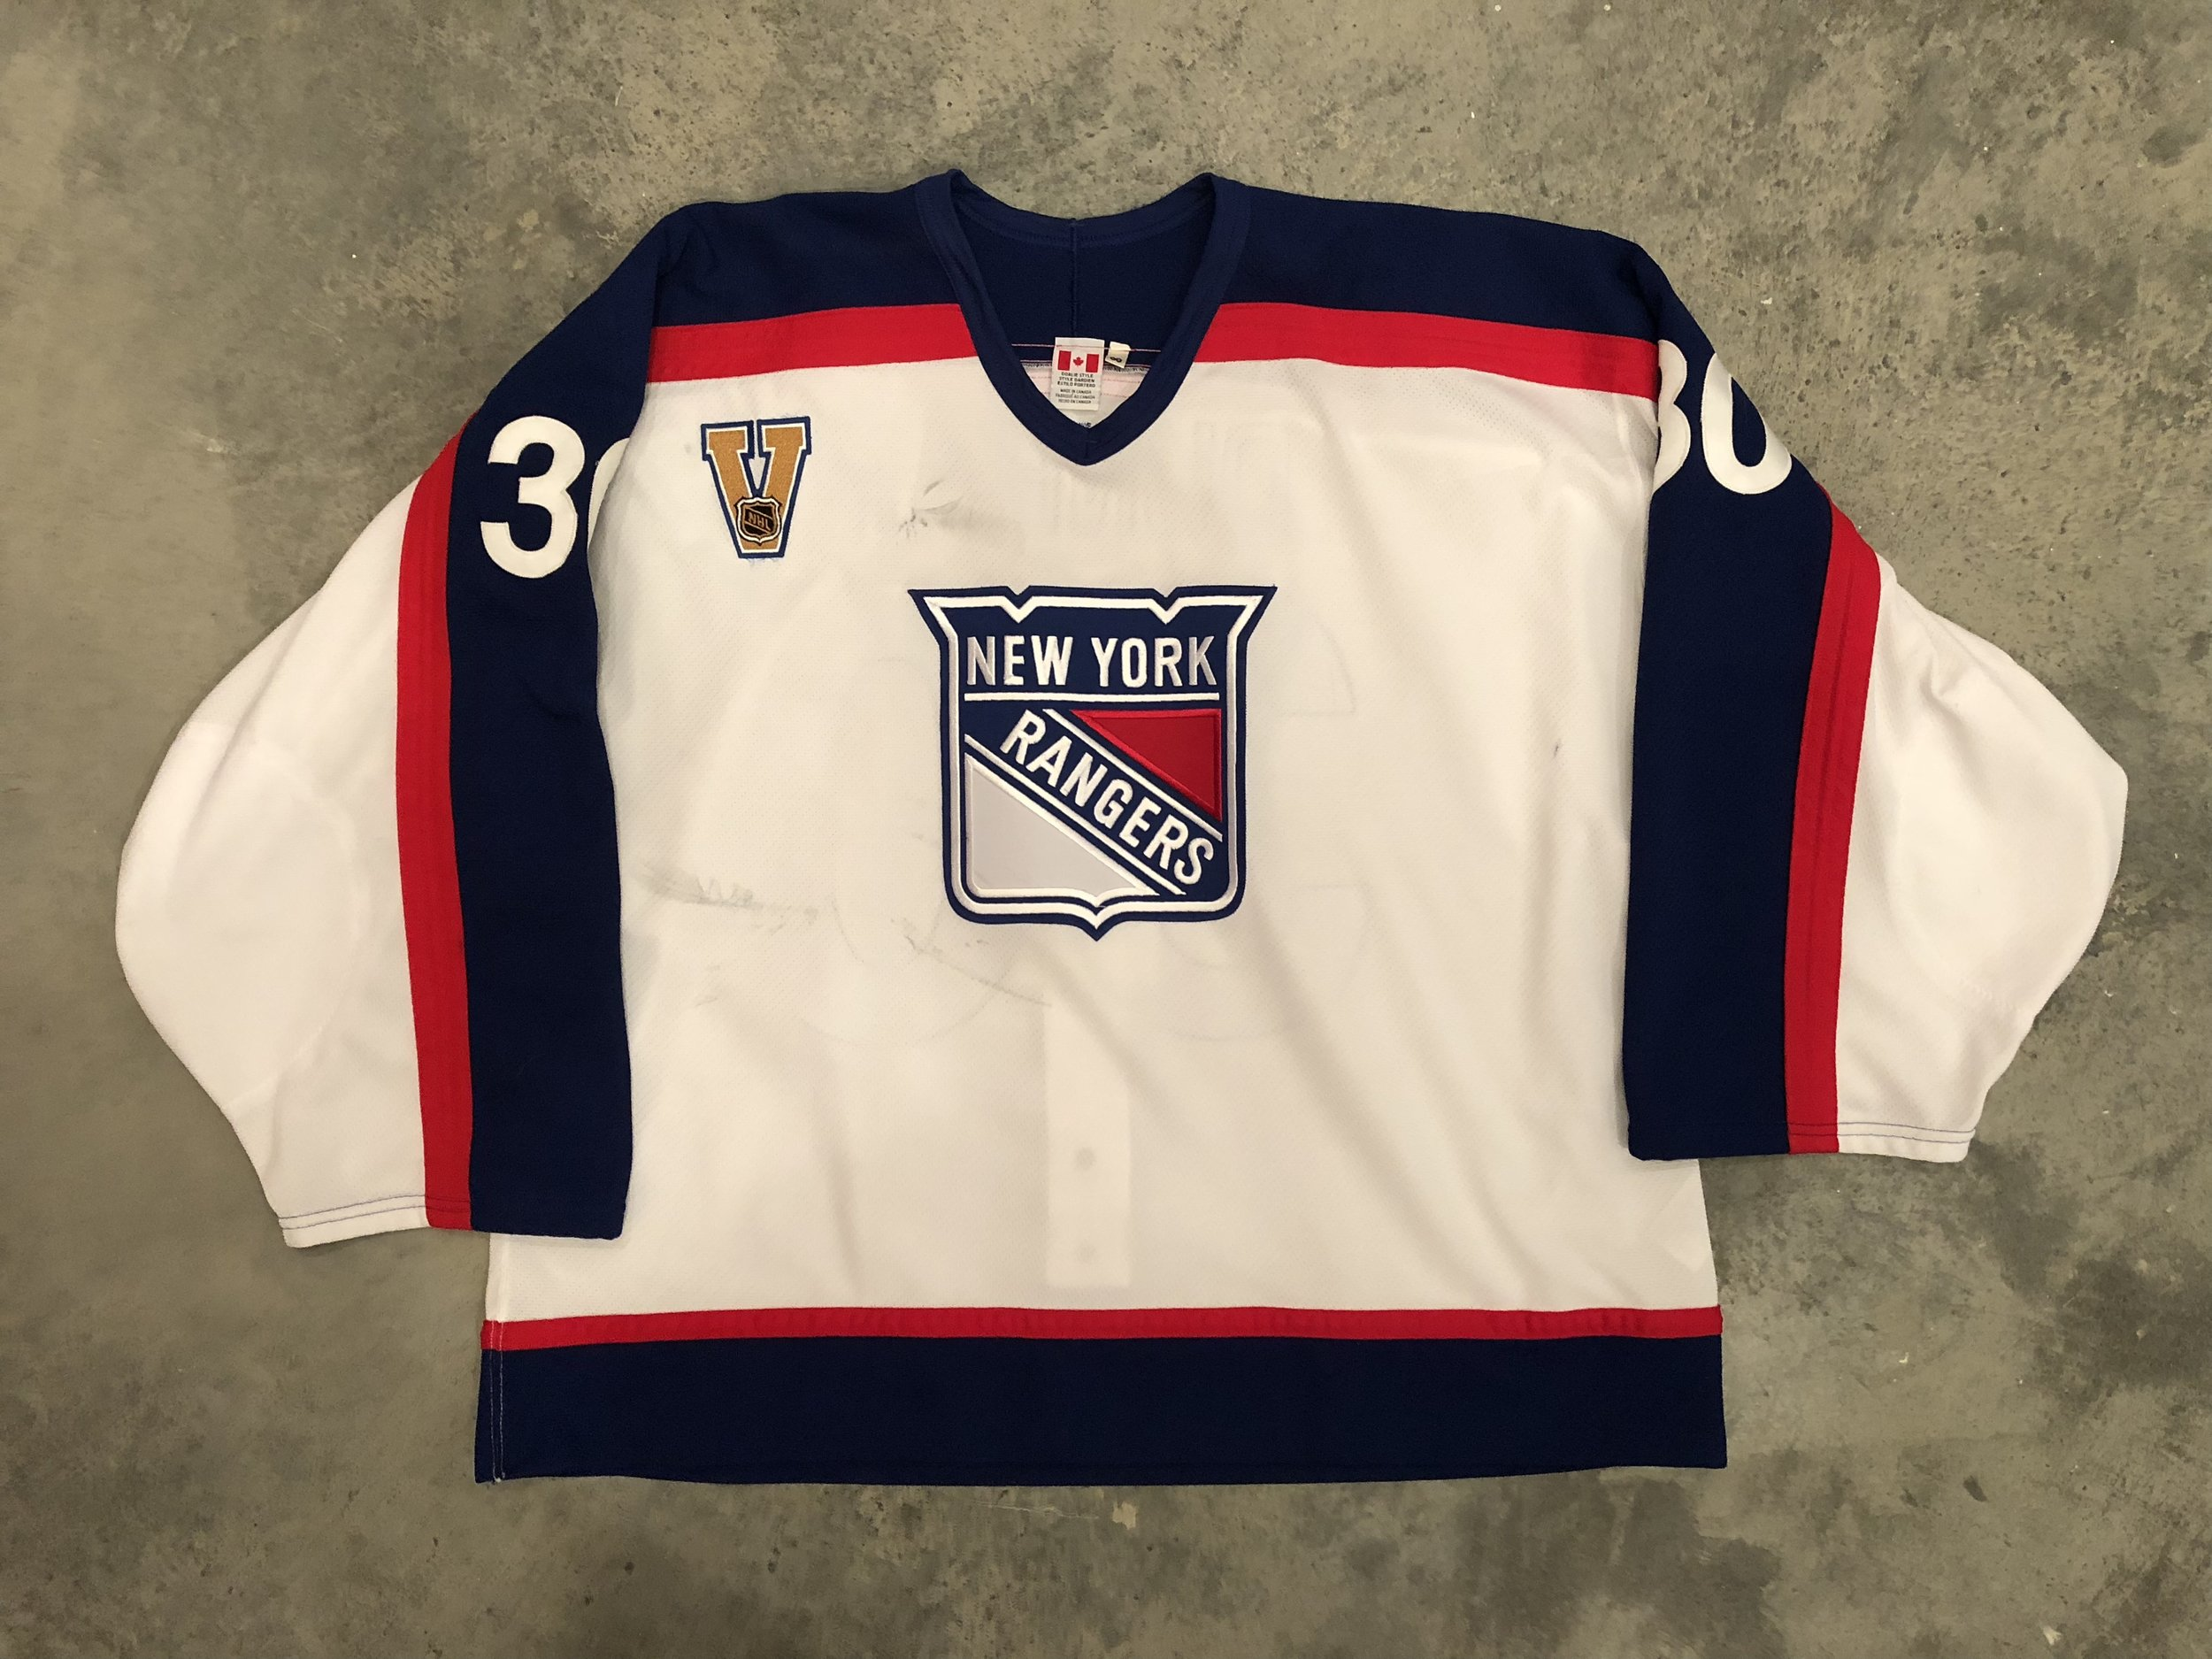 2003-04 Mike Dunham New York Rangers Vintage Home Game Worn Jersey